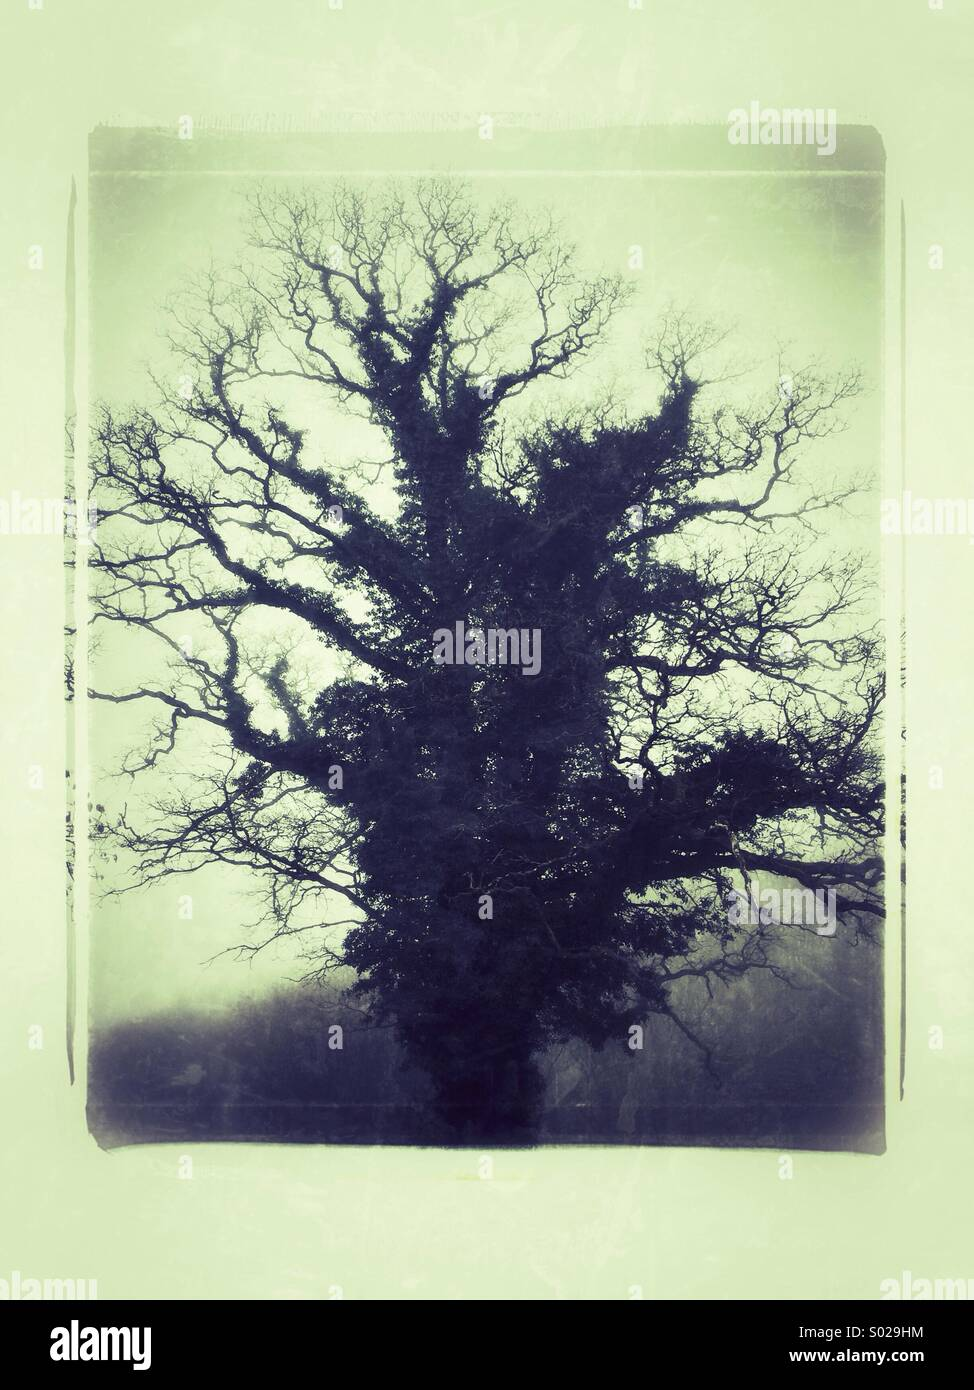 Ancient Oak Tree in The Mist - Stock Image